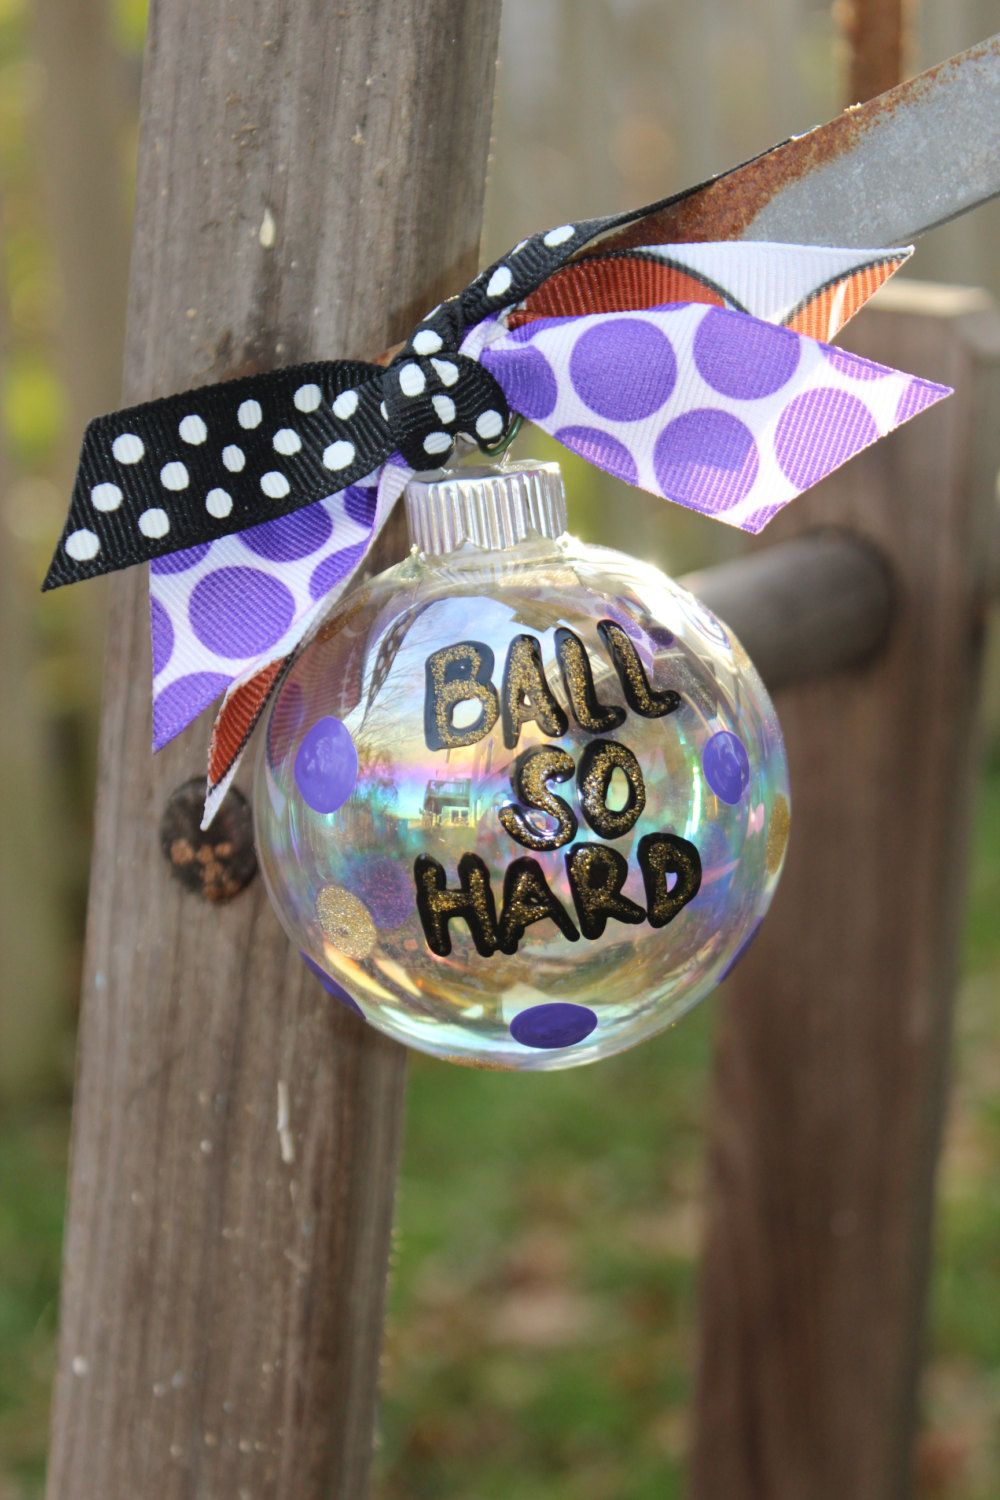 Ball so hard ornament by aGlassWithSass on Etsy